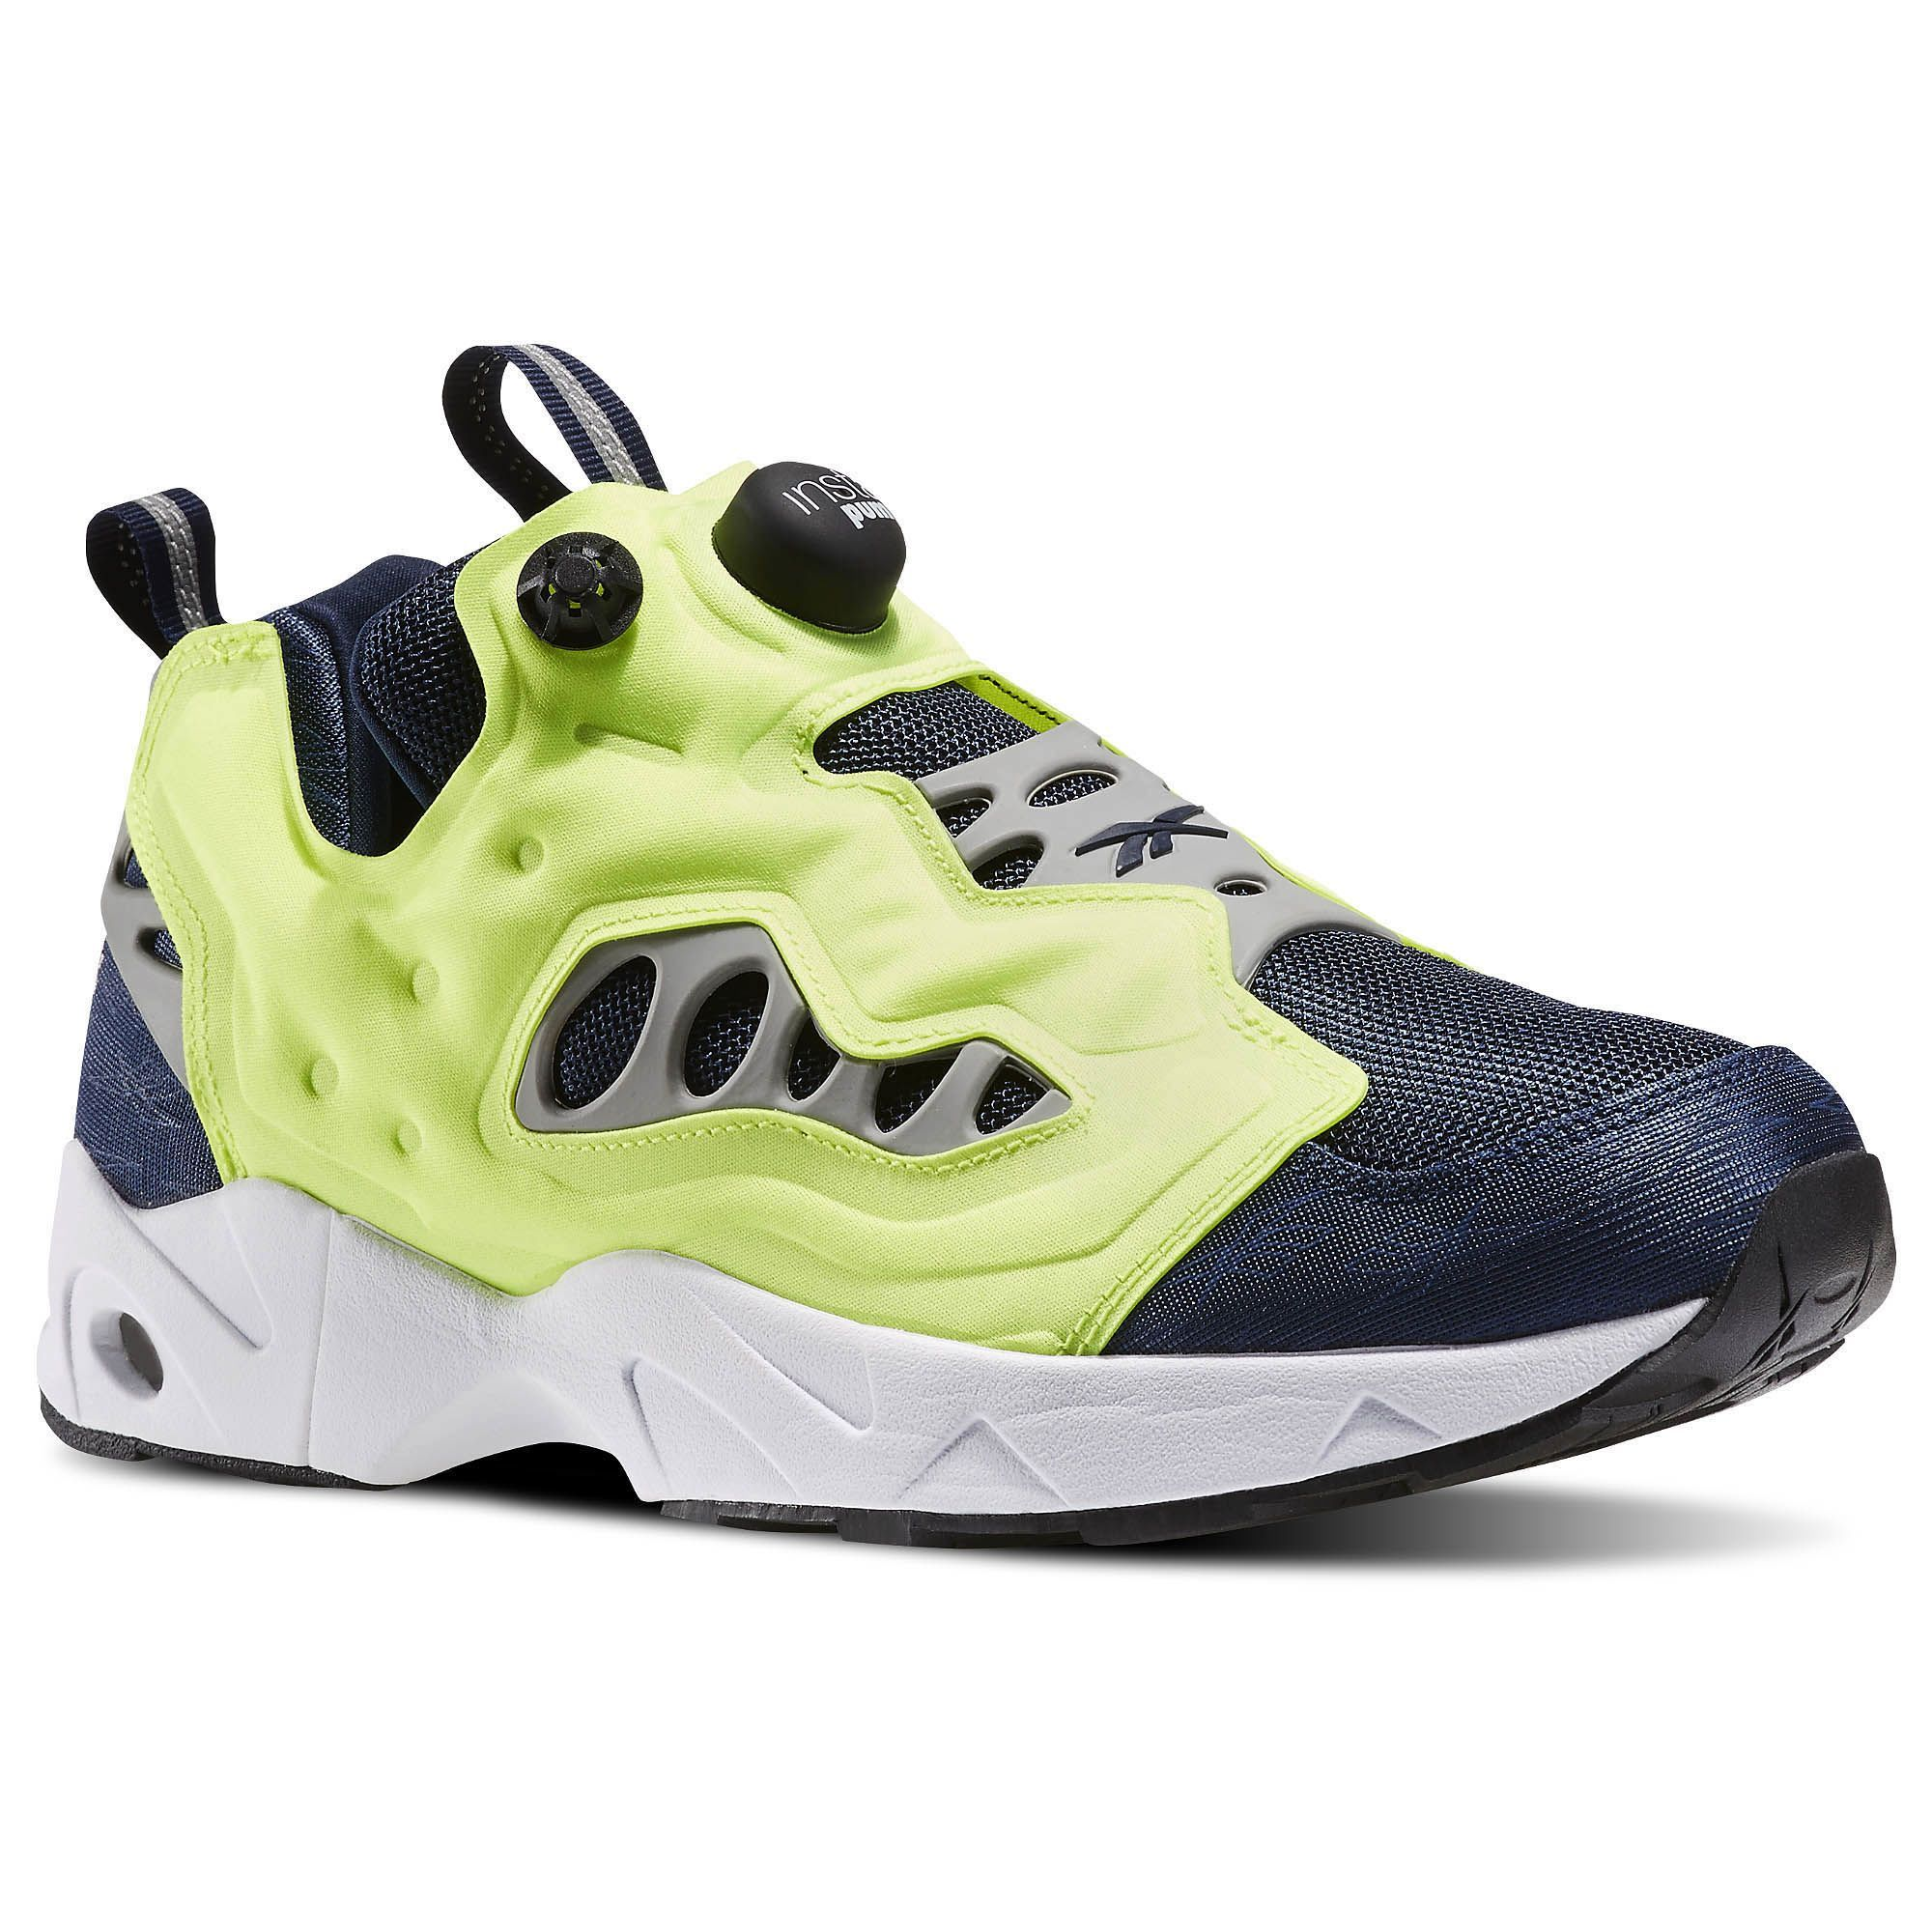 Create a sensation when you step into the InstaPump Fury Road 090a9a0b1